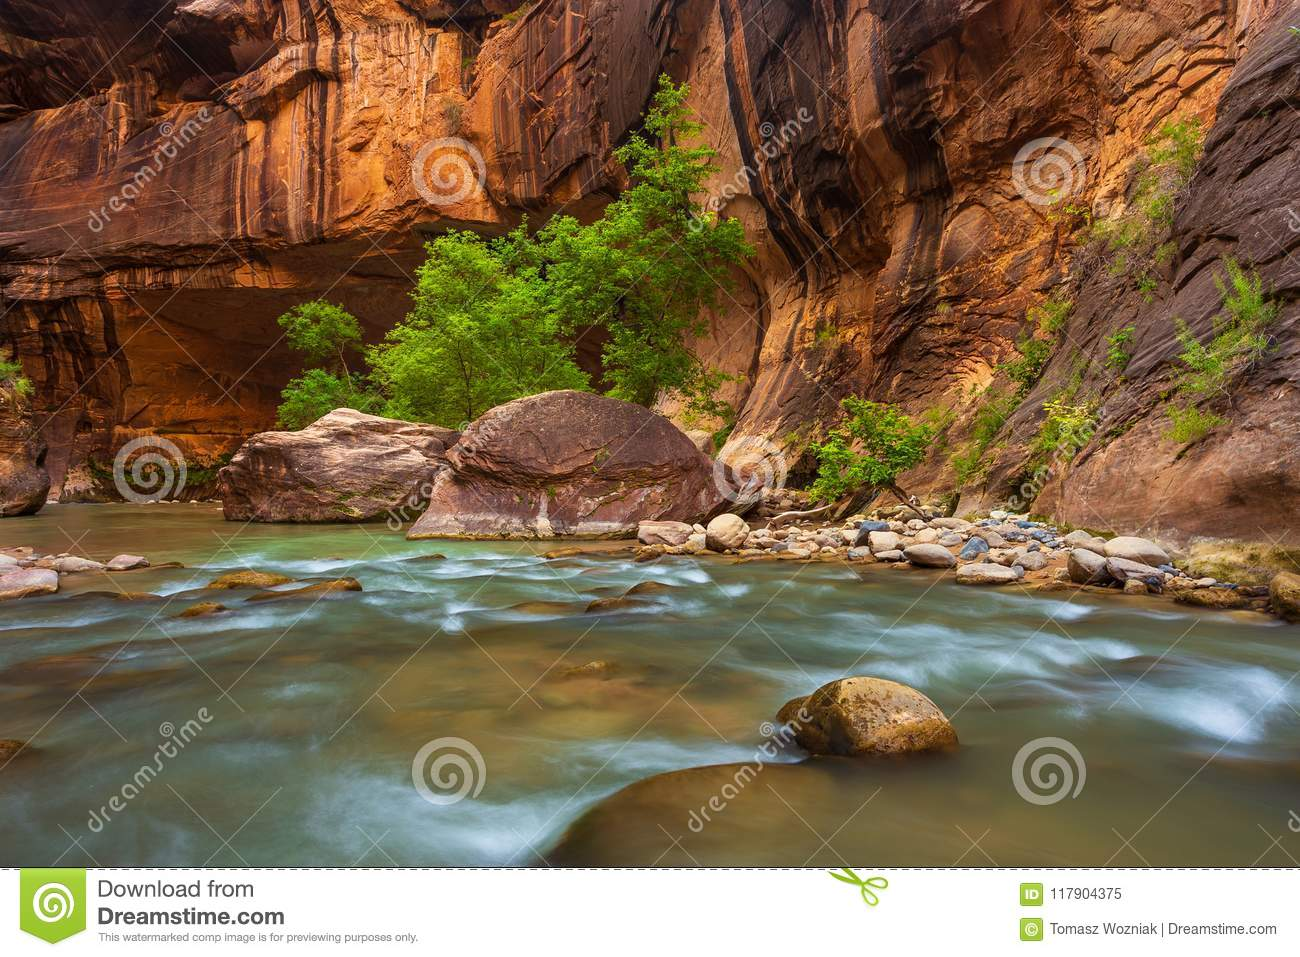 Trees in the Virgin Narrows River in Zion National Park.